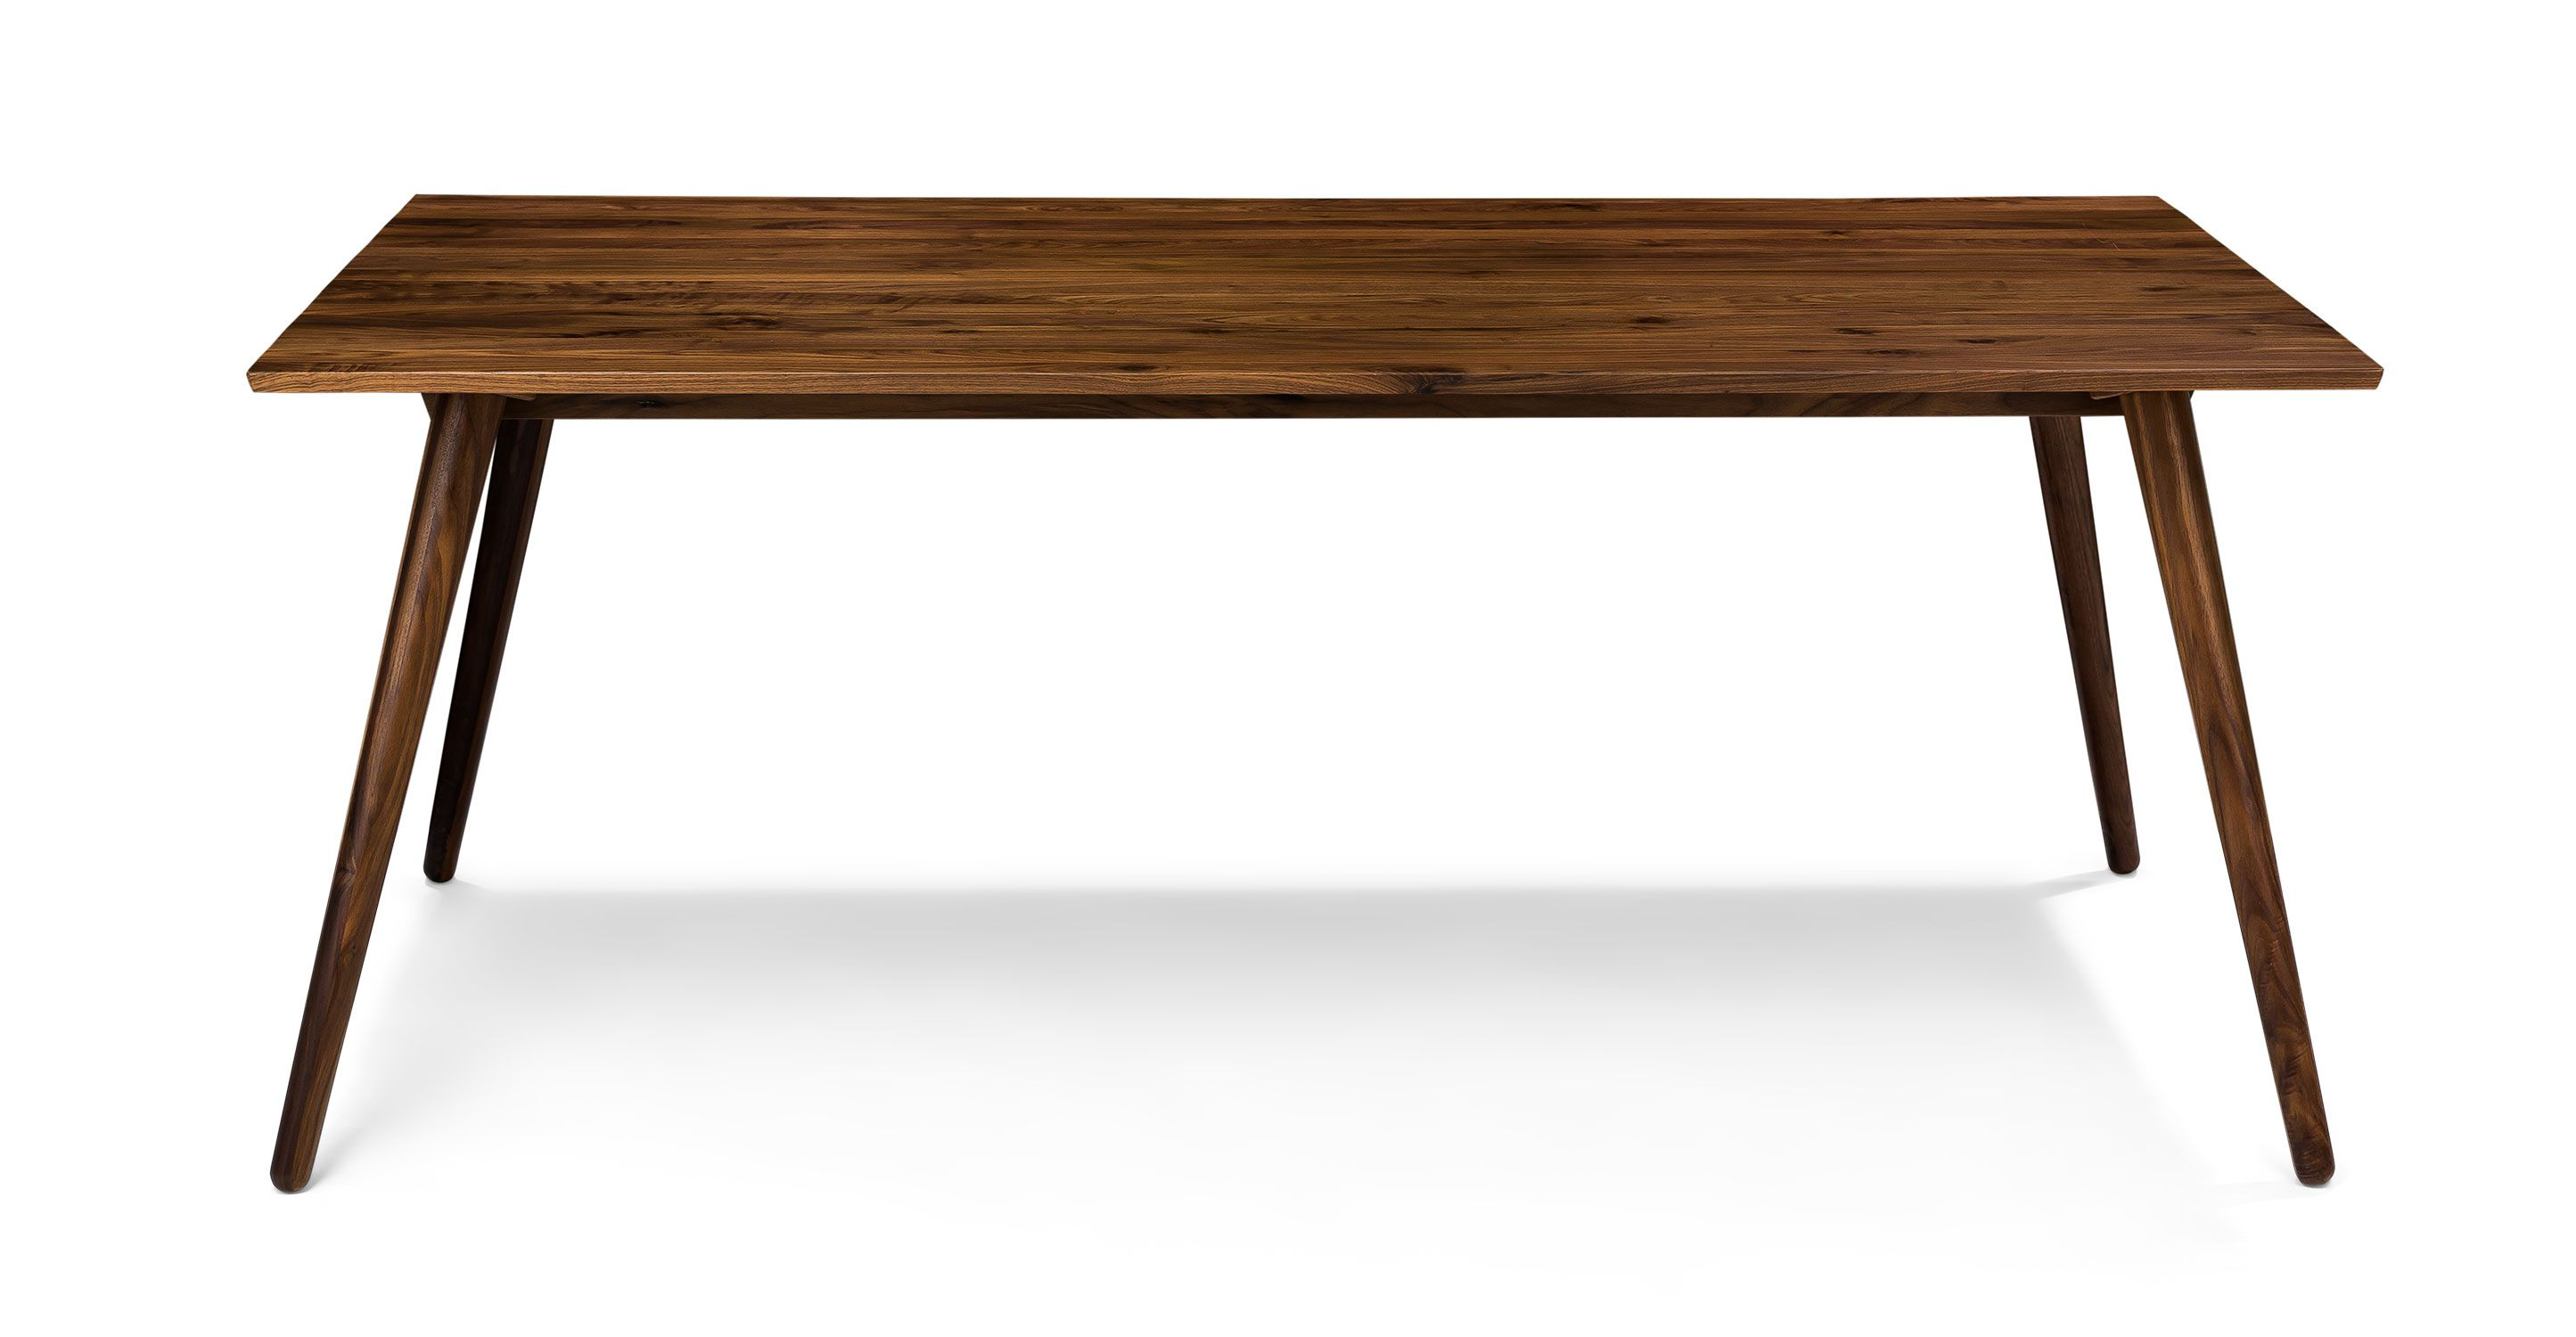 Walnut Dining Table Rectangular 6 Person Article Seno  : 415ad0c49f26ff5d02e9c8dc0b6da923 from www.pinterest.dk size 2890 x 1500 jpeg 242kB